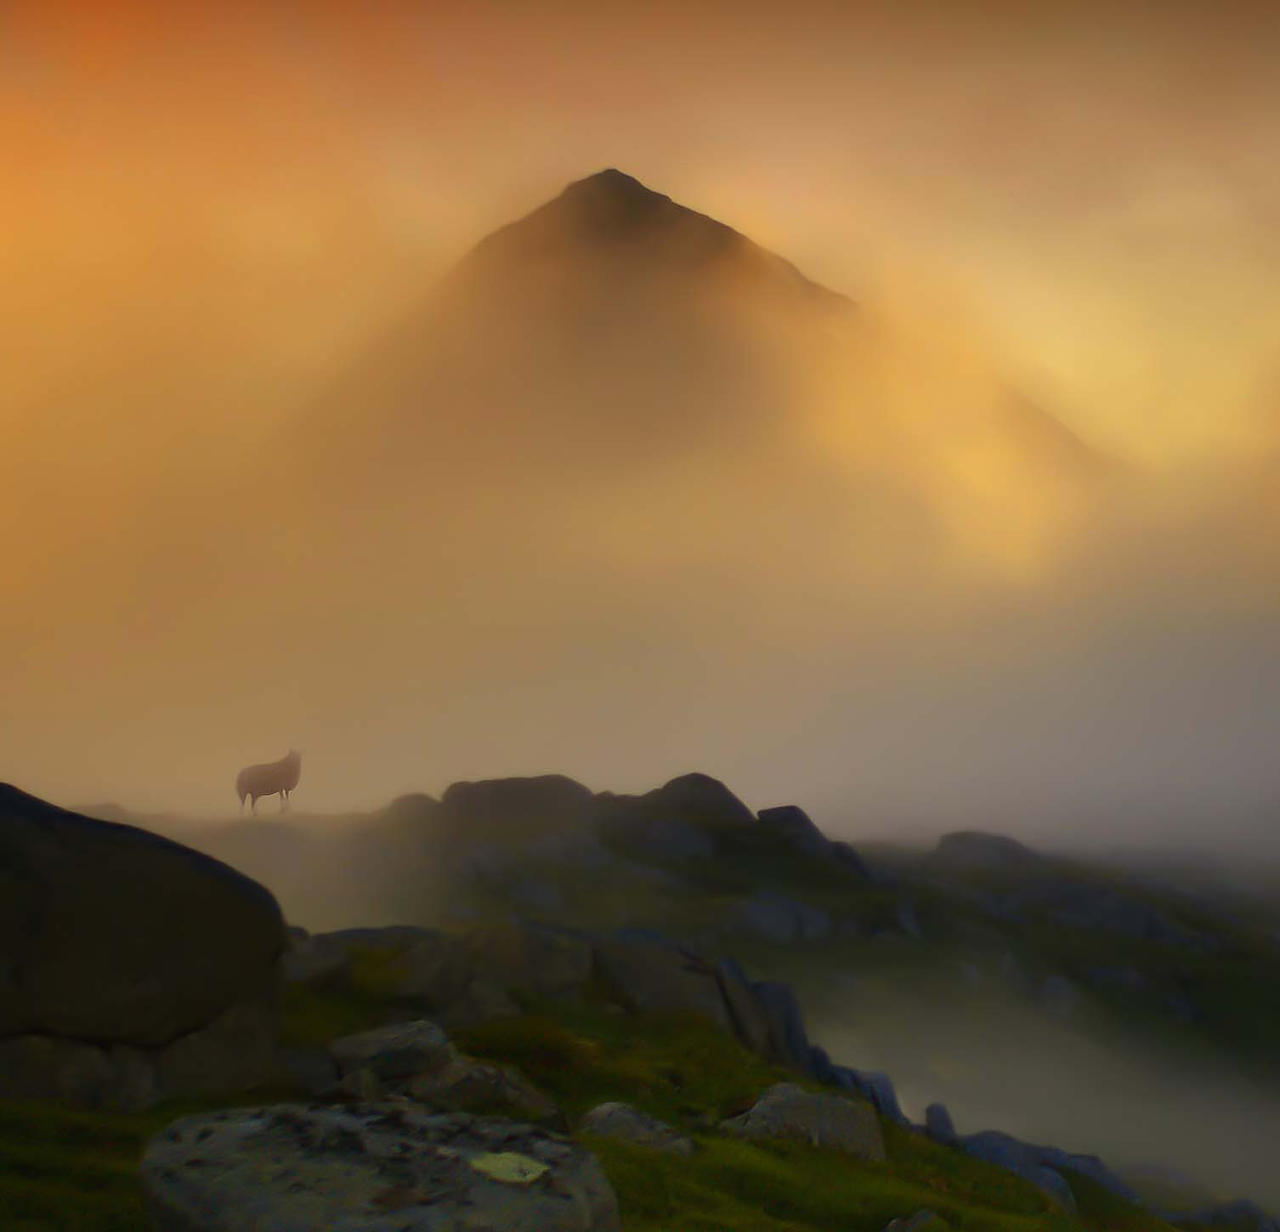 Golde mist and one lost sheep by steinliland